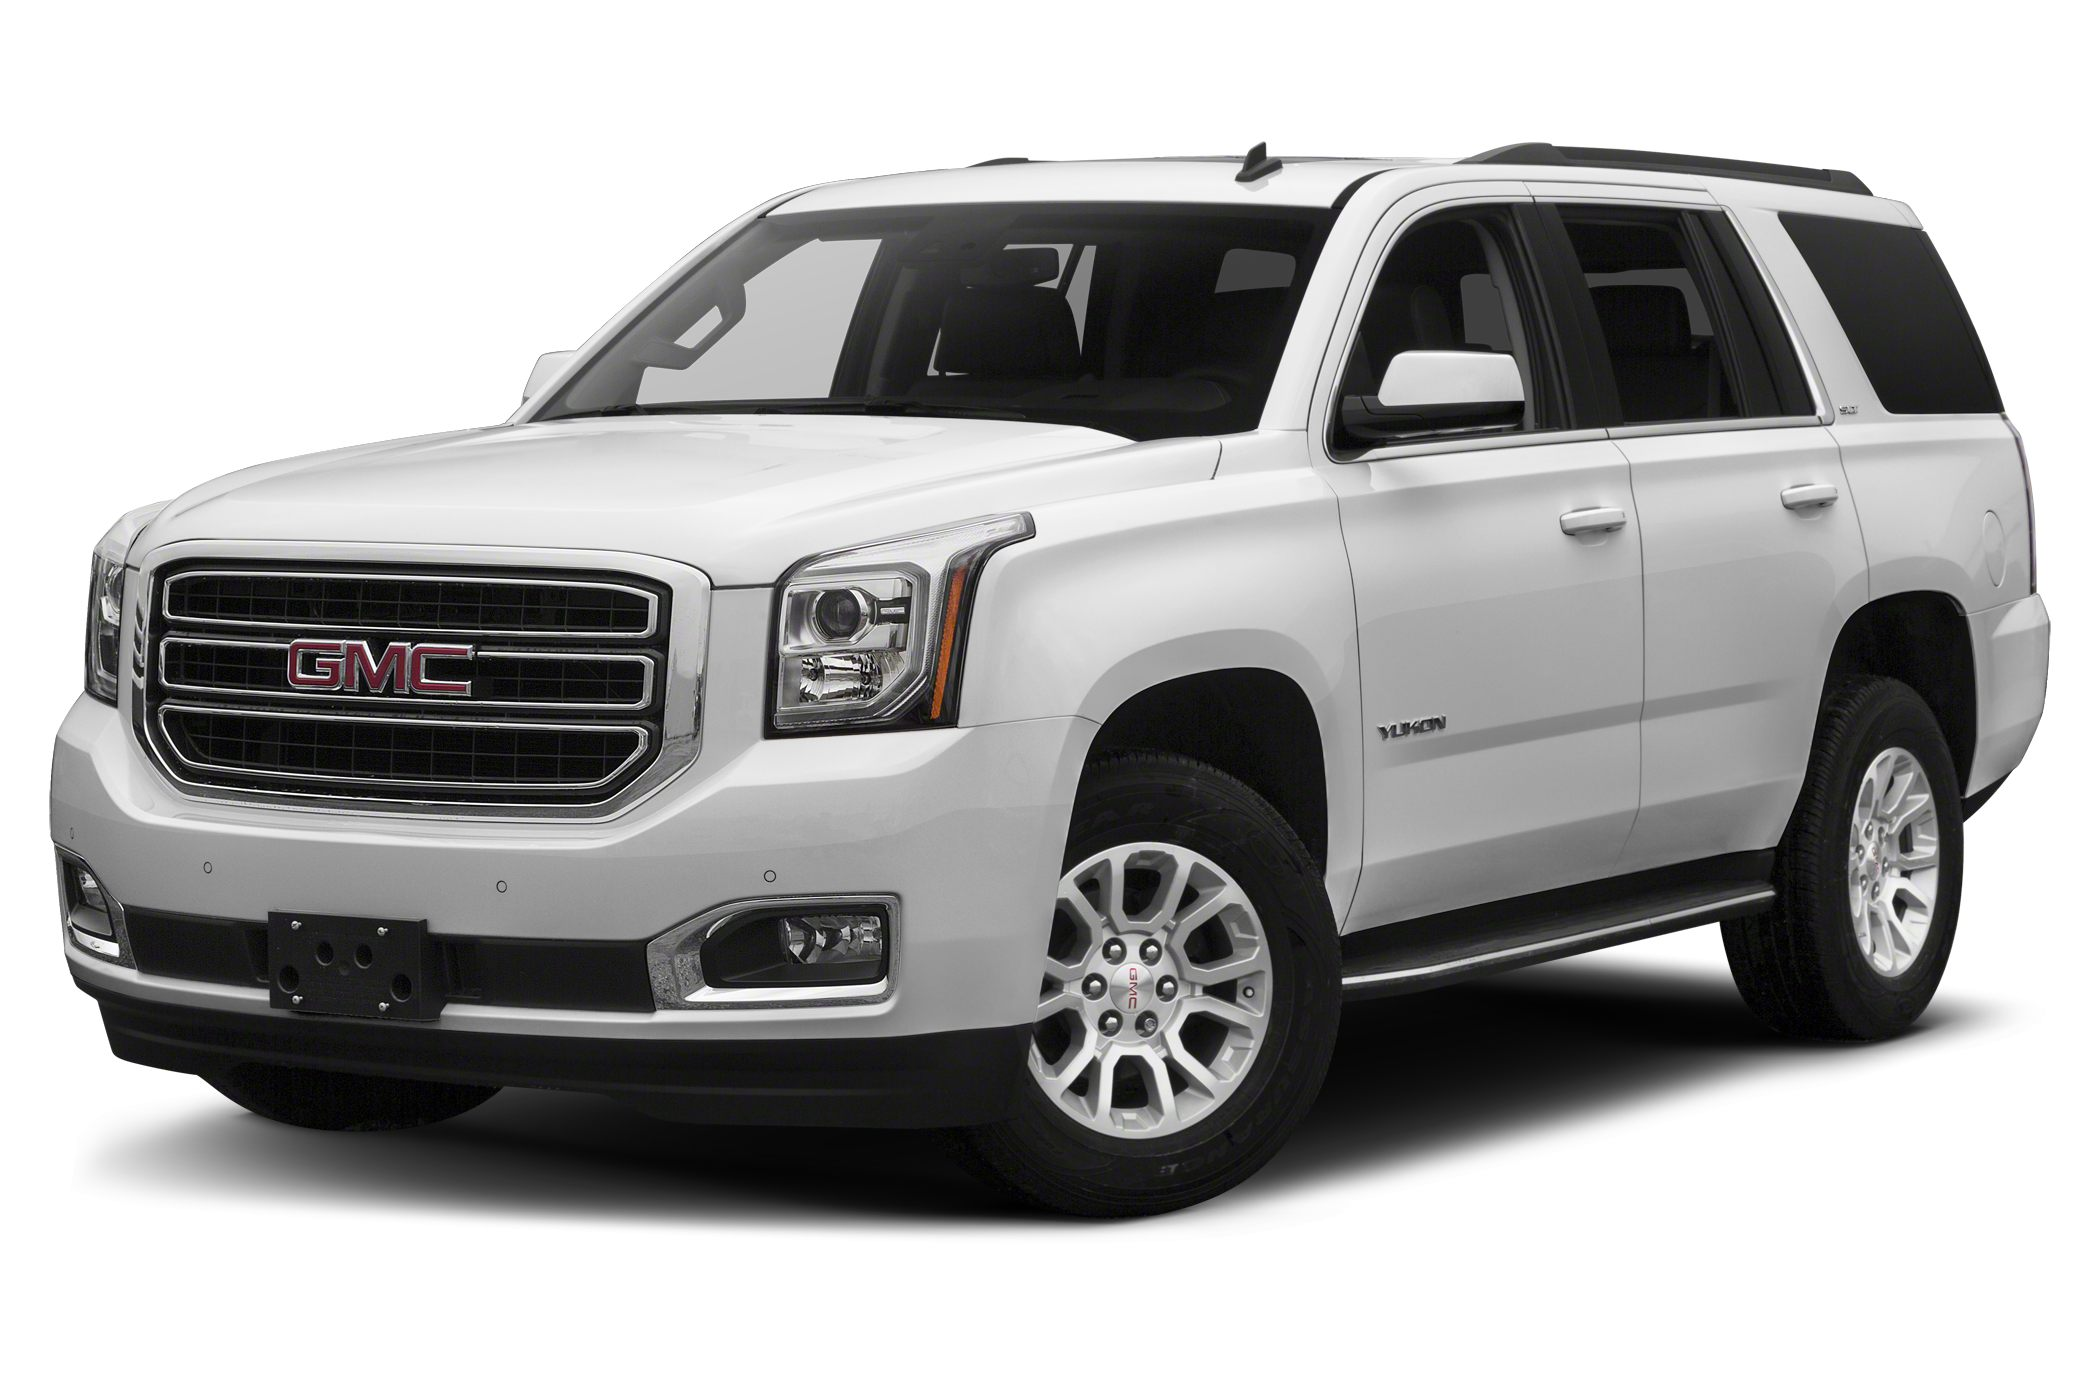 2015 GMC Yukon SLT SUV for sale in Abilene for $66,585 with 0 miles